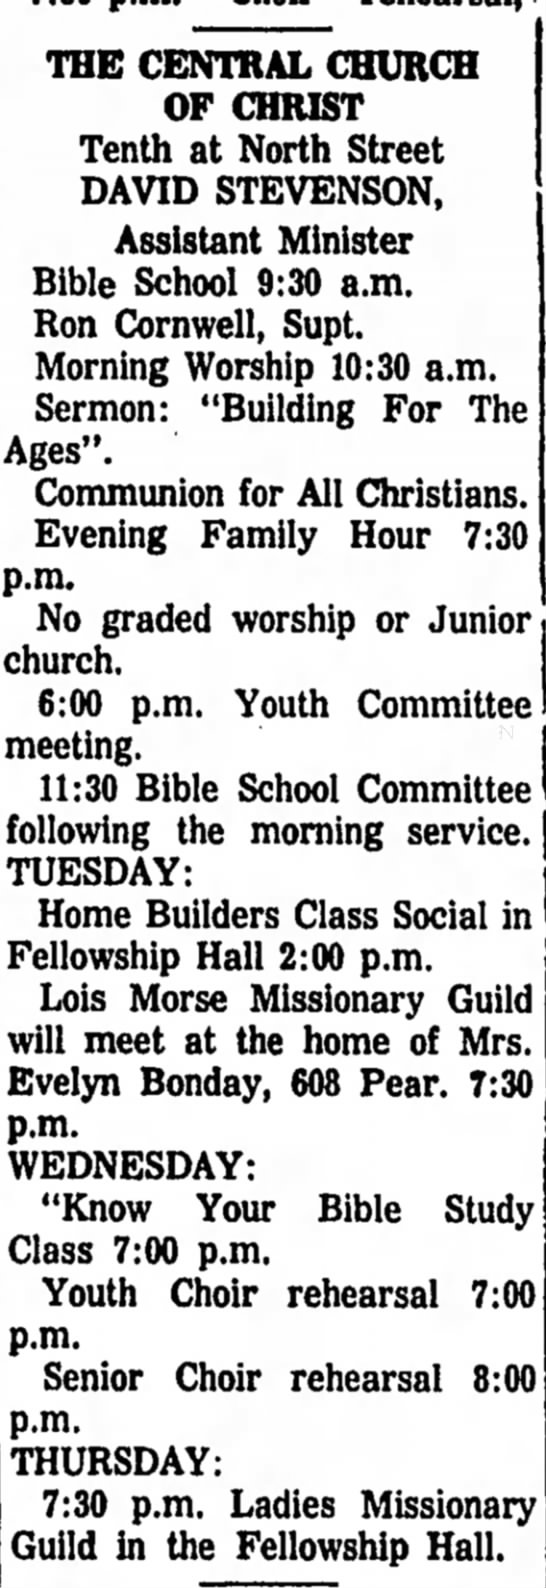 1972 July 29 Ron Cornwell Sunday School Superintendent - THE CENTRAL CHURCH OF CHRIST Tenth at North...